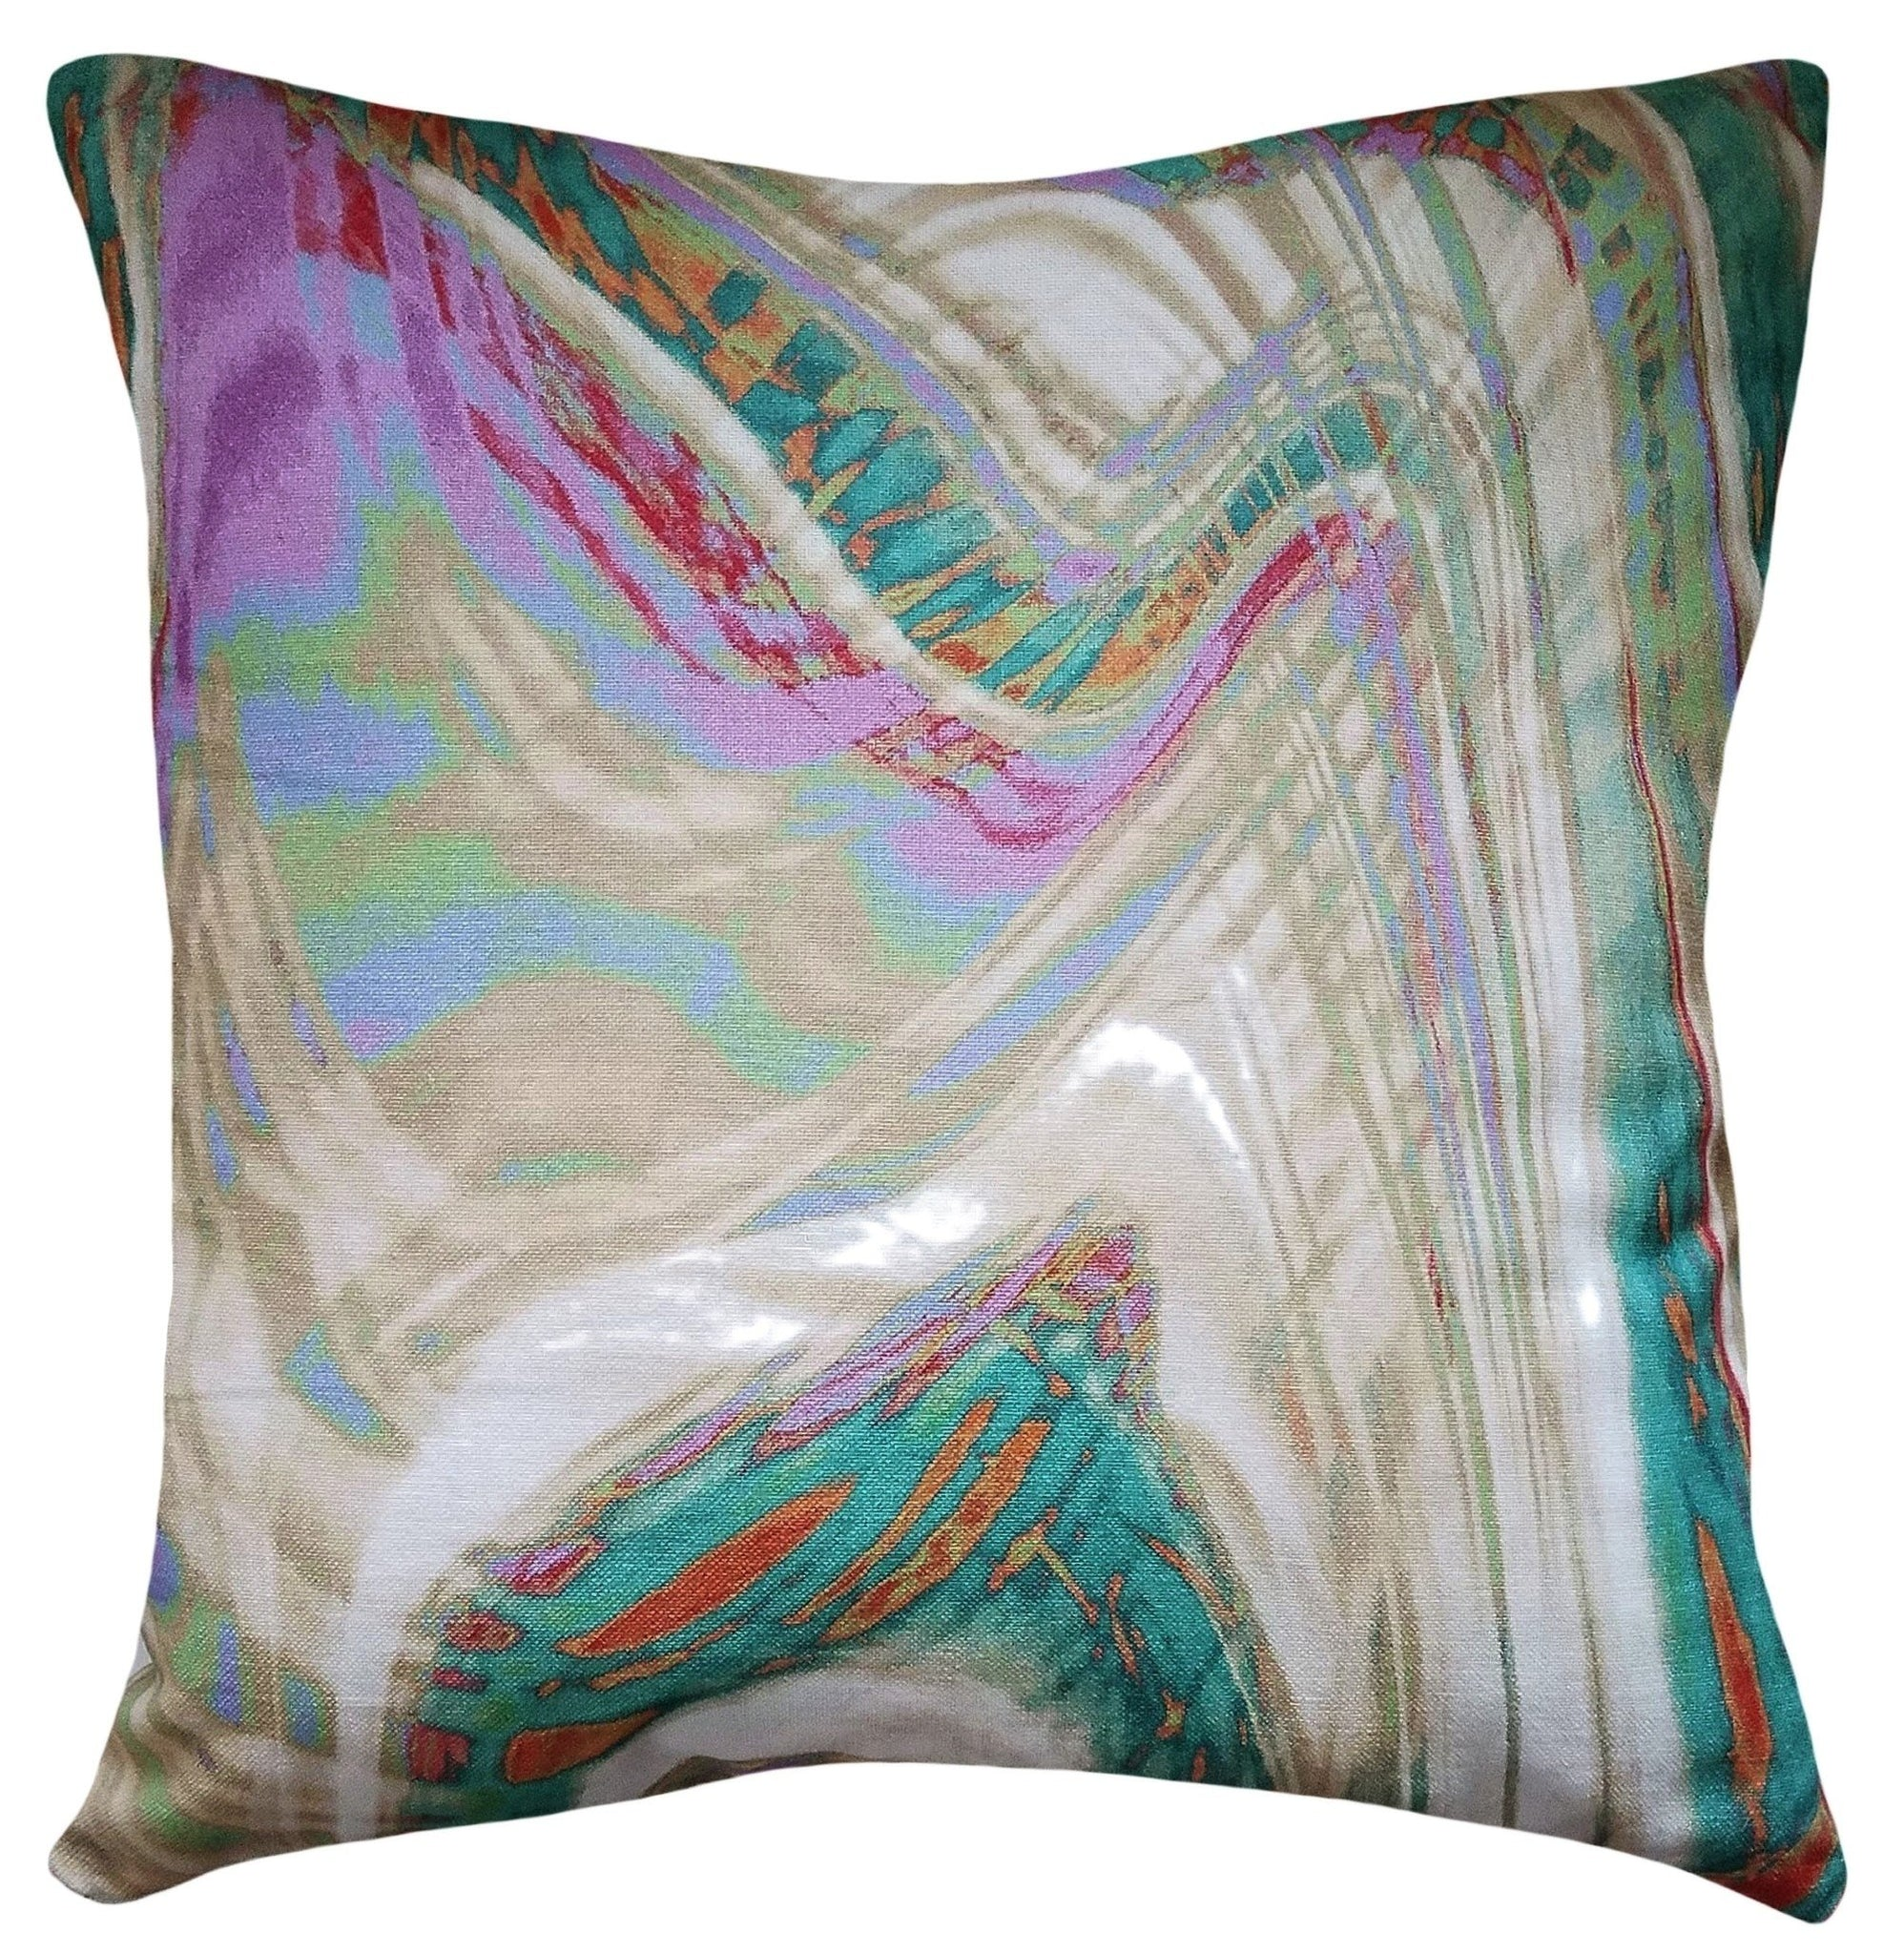 wholesale-designer-throw-pillow-covers-abstract